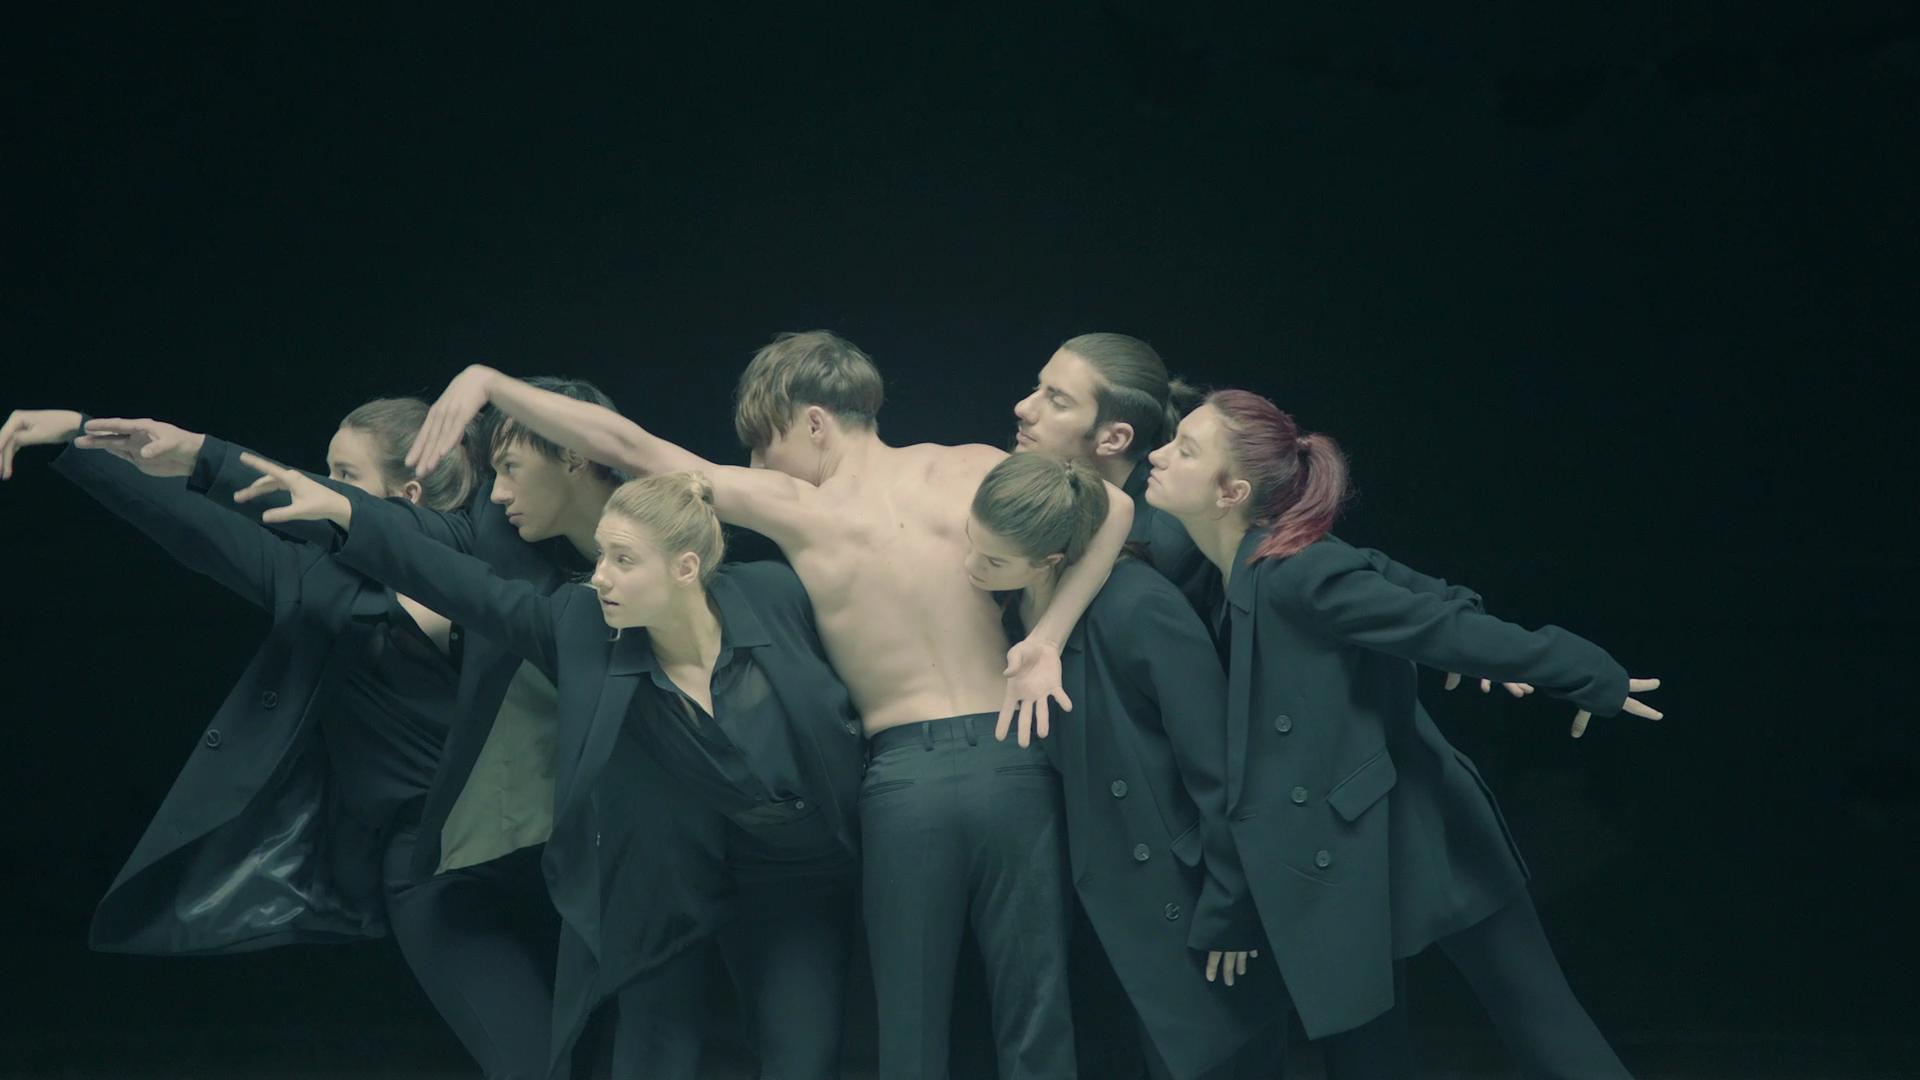 BTS (방탄소년단) 'Black Swan' Art Film performed by MN Dance Company